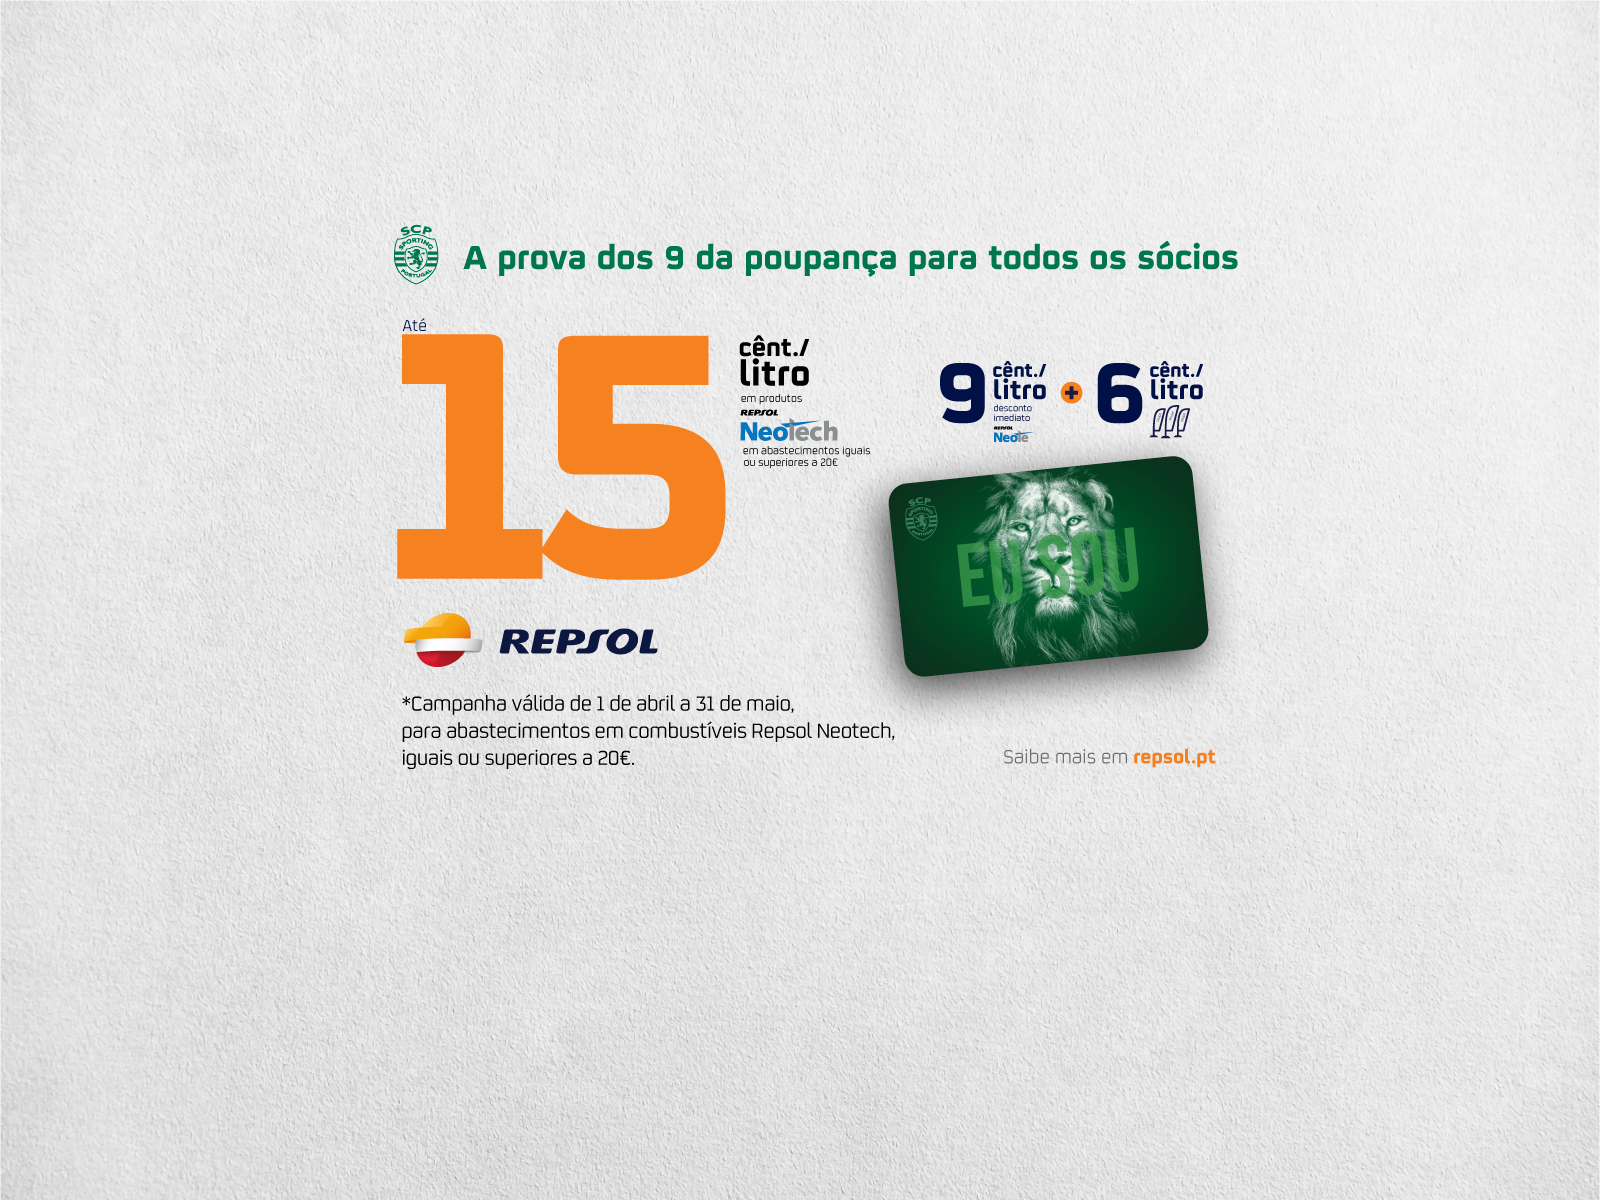 https://scpconteudos.pt/sites/default/files/revslider/image/Promo-Repsol-Banner-HP_0.jpg